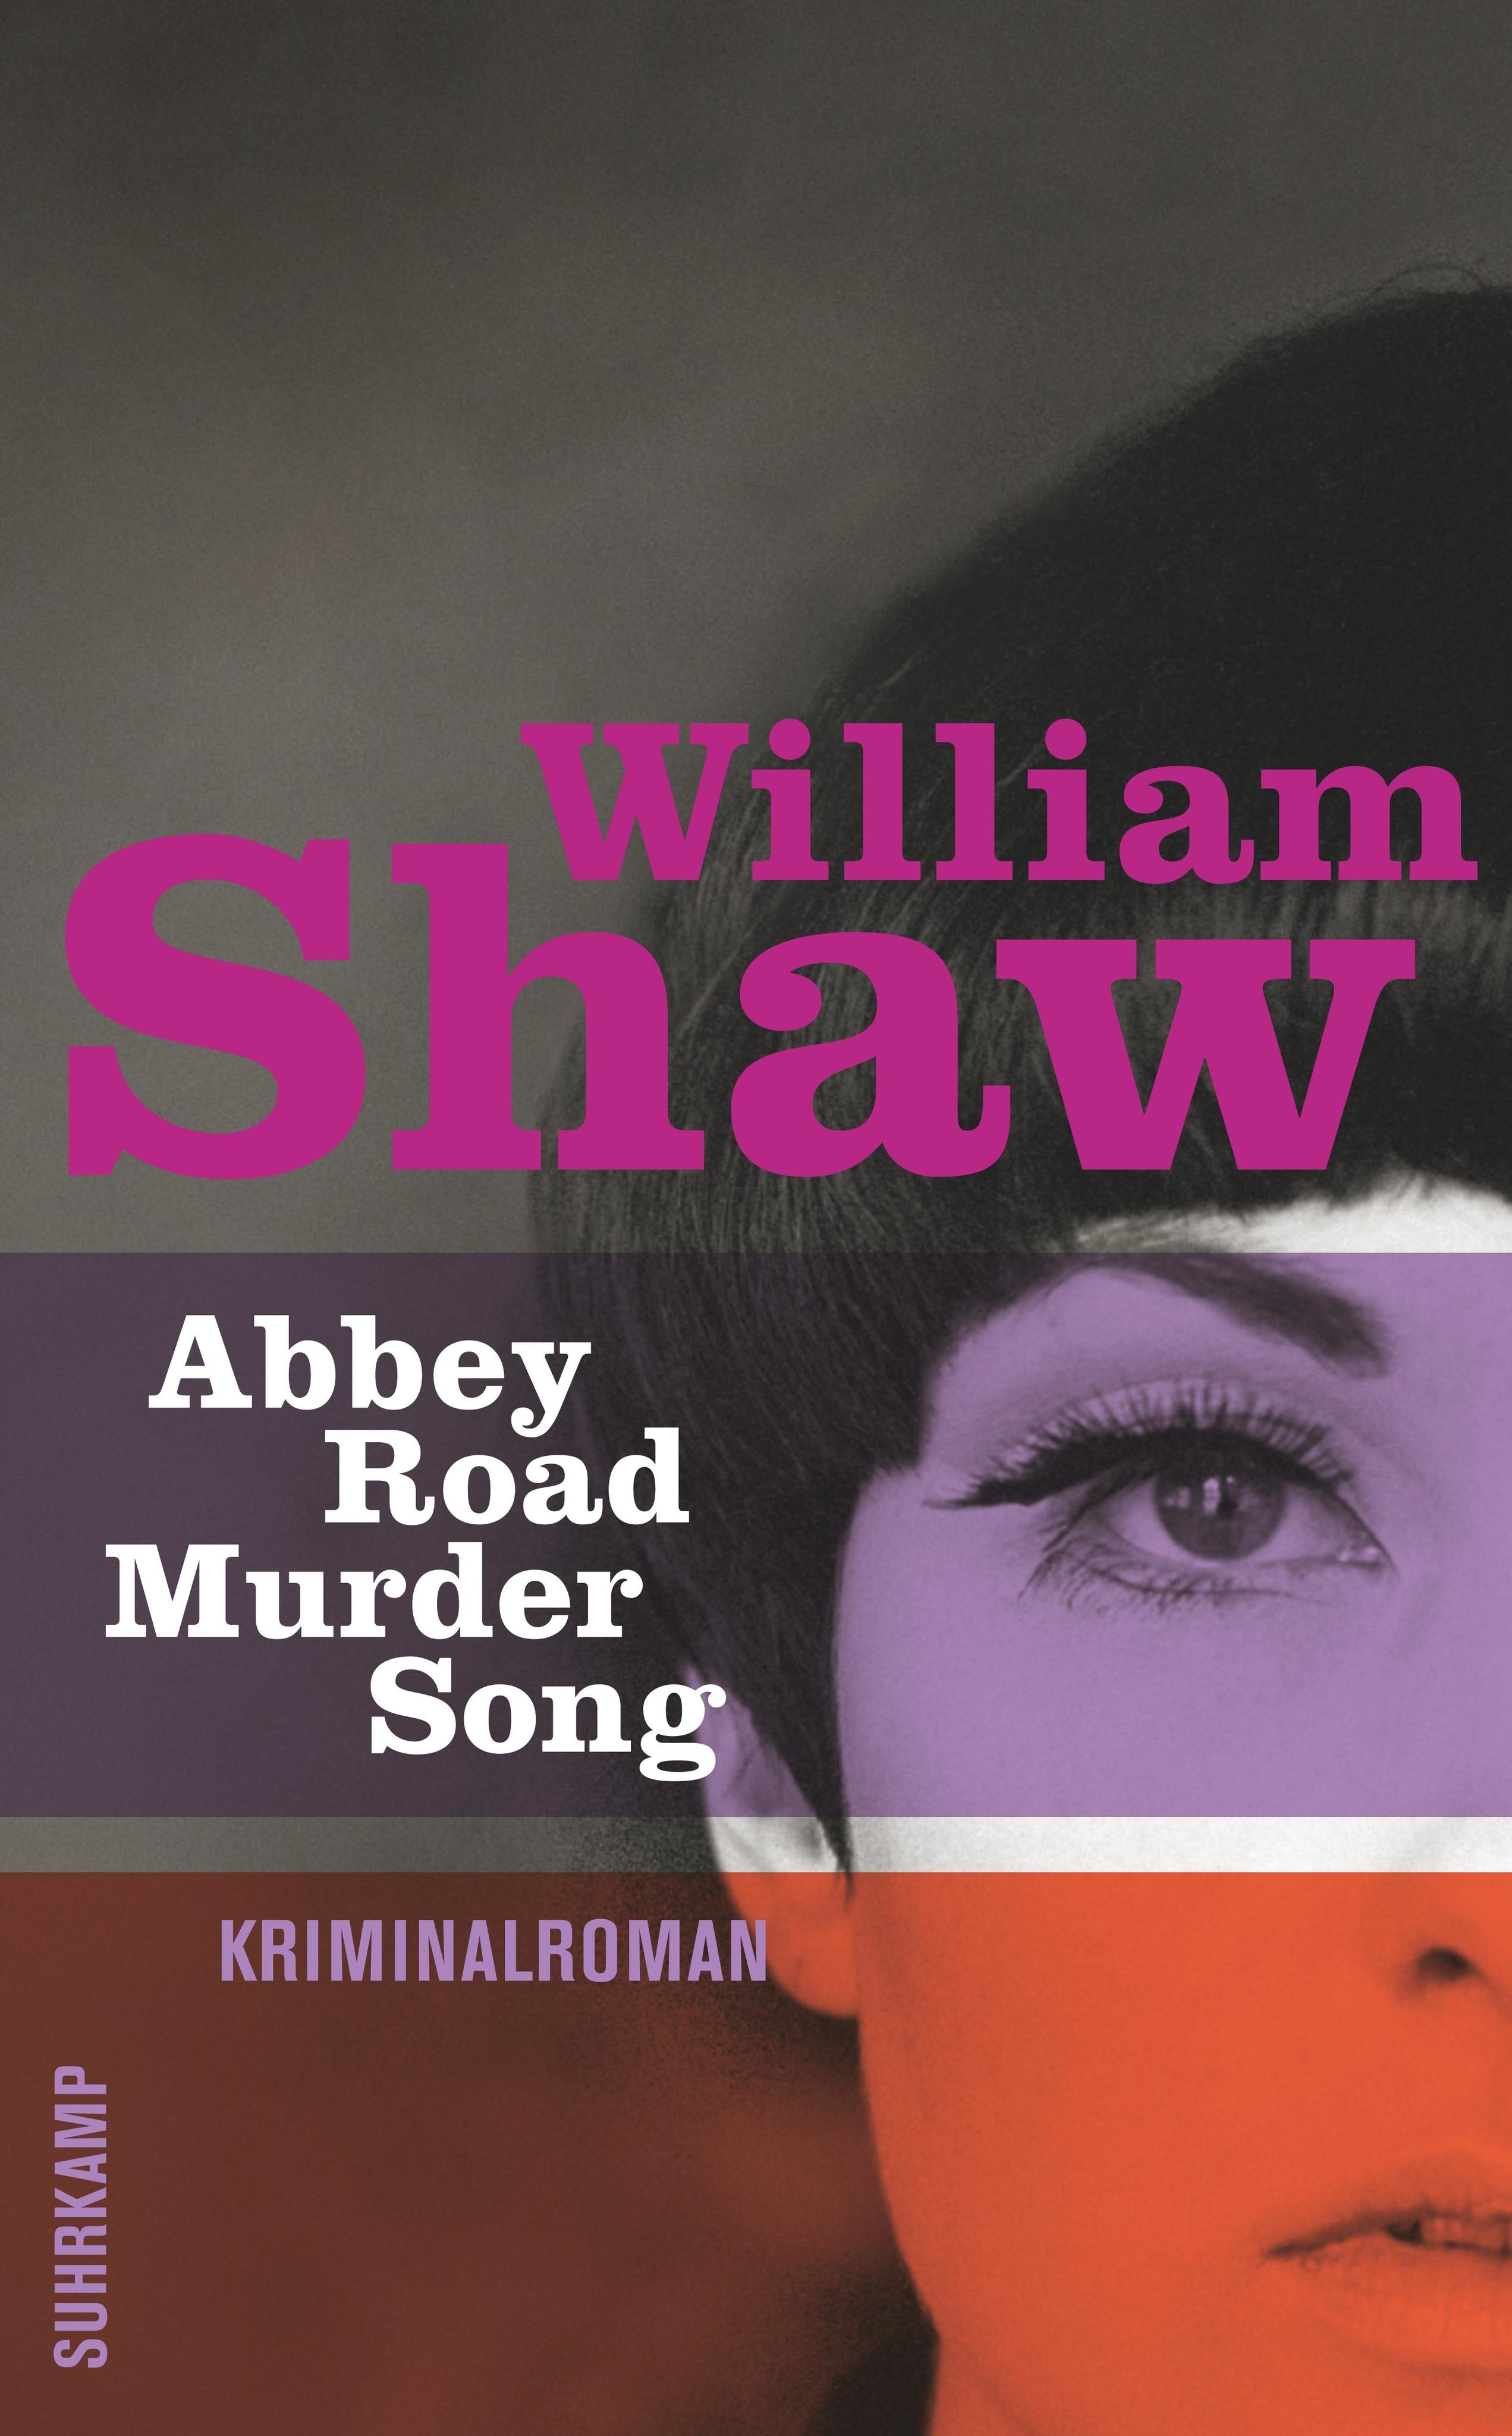 Abbey Road Murder Song: William Shaw